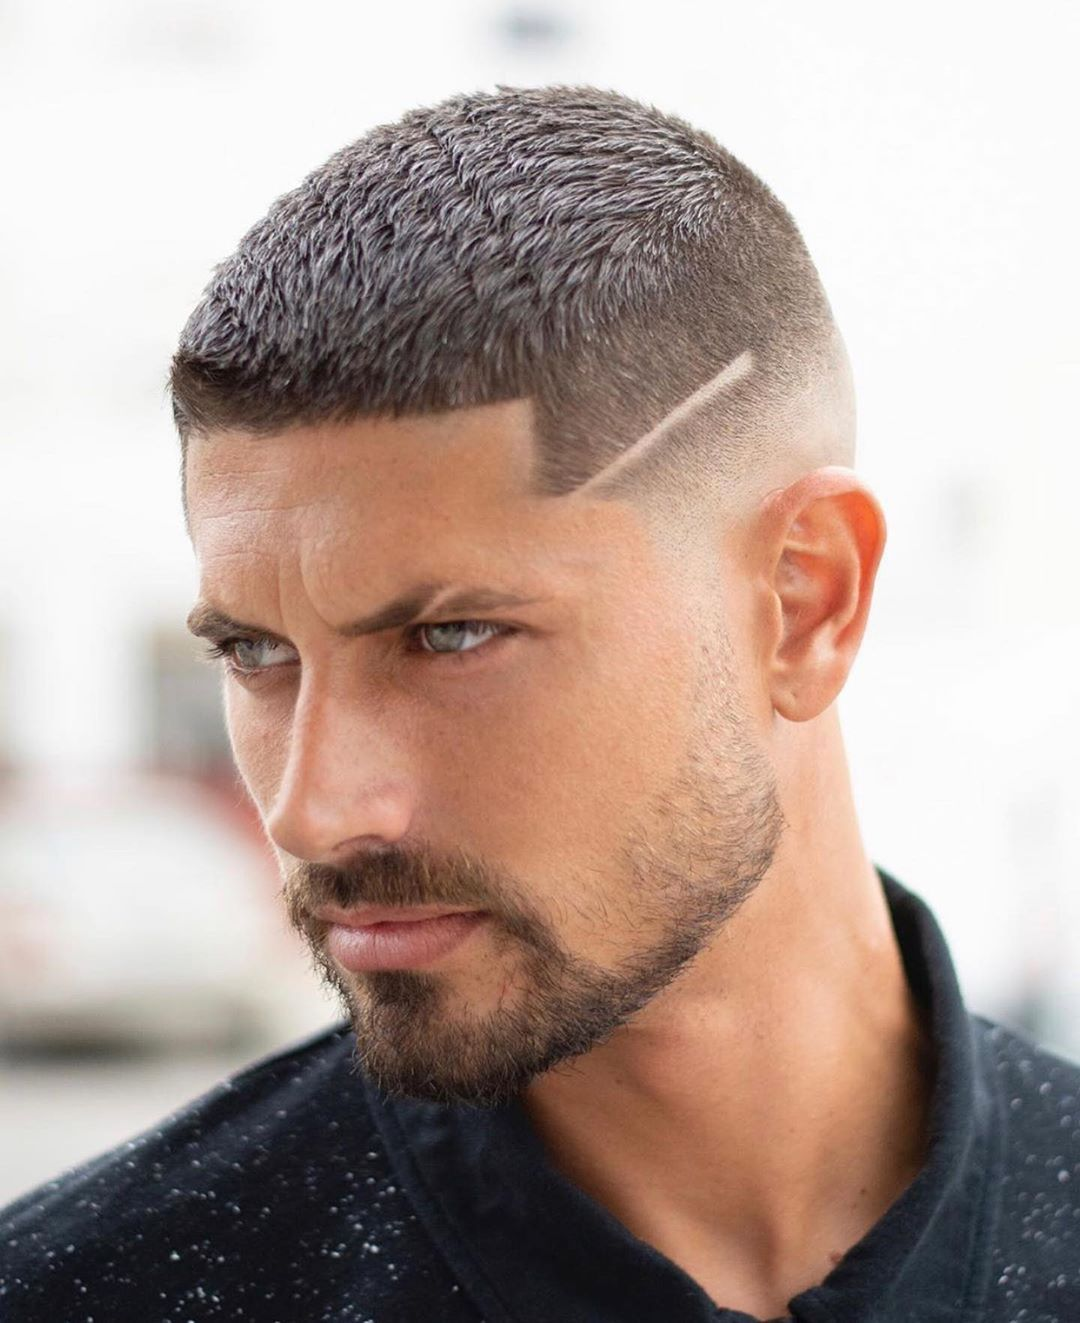 11 Best Short Hairstyles for Men 11 - The Indian Gent in 11